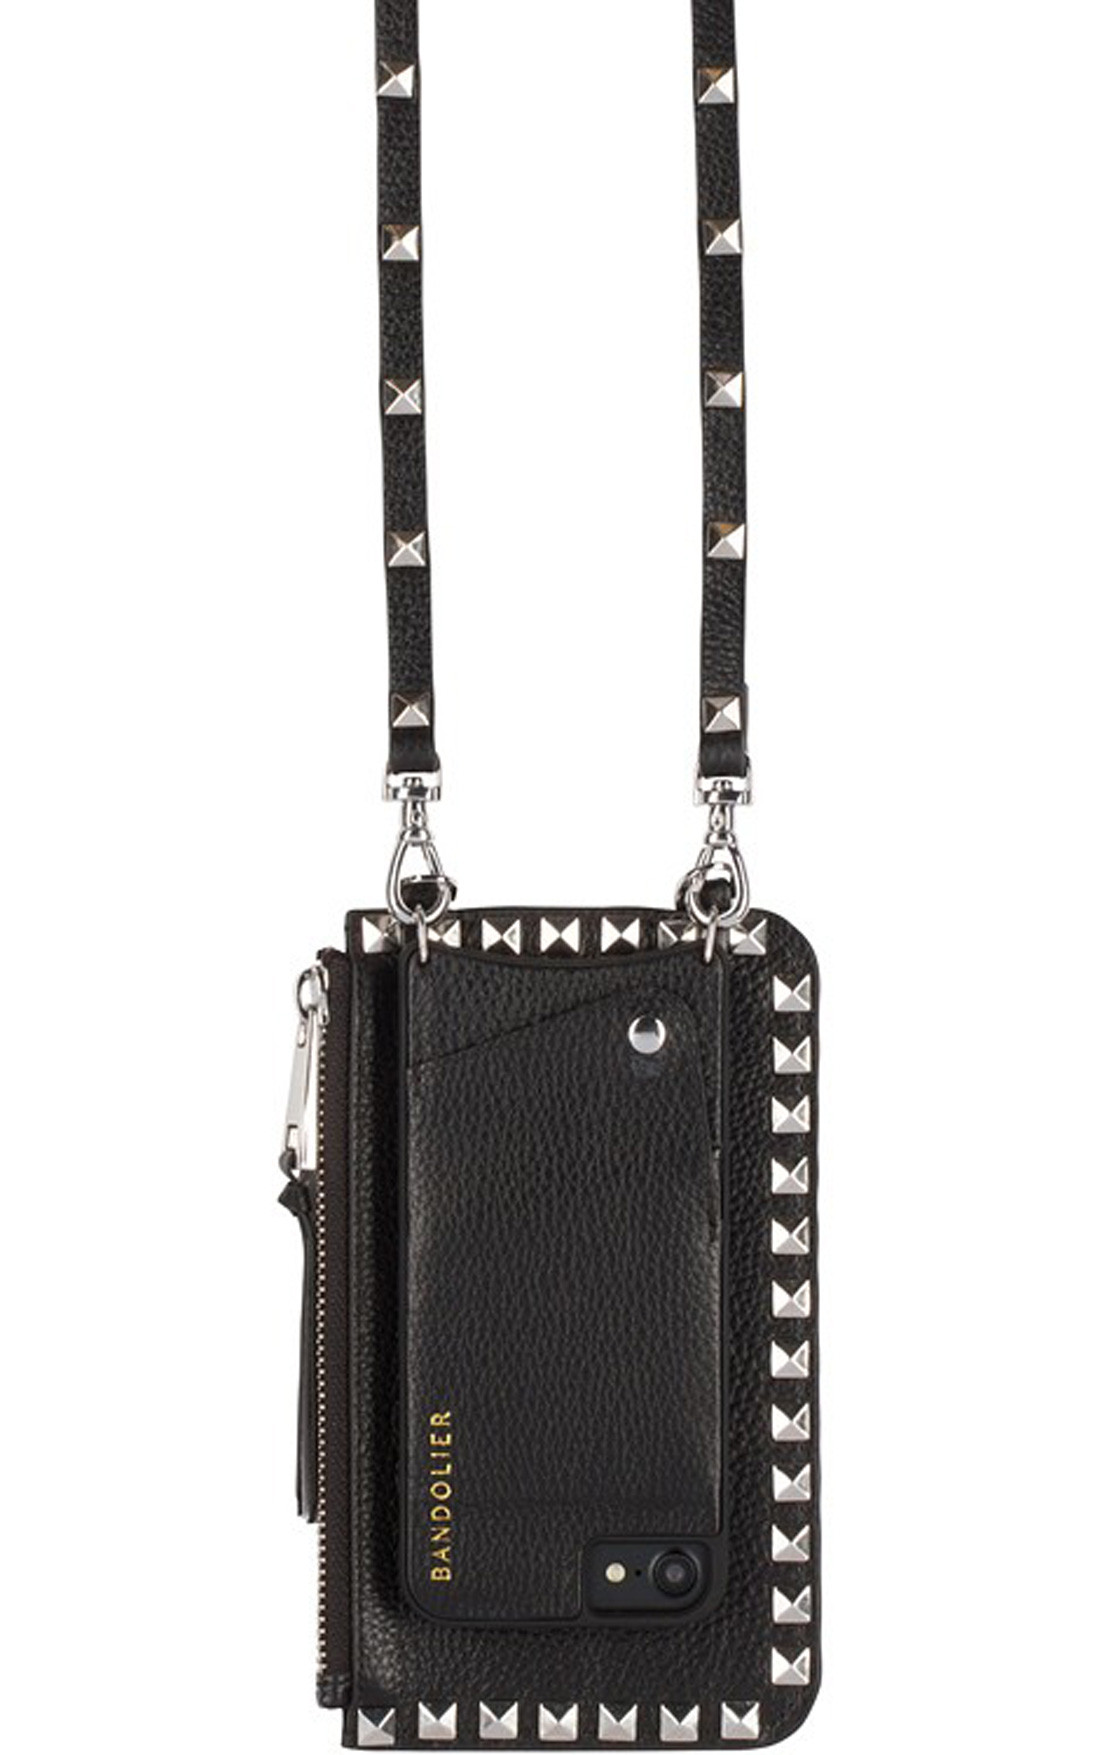 Bandolier - Silver Stud Black Hardware Pouch (8013)